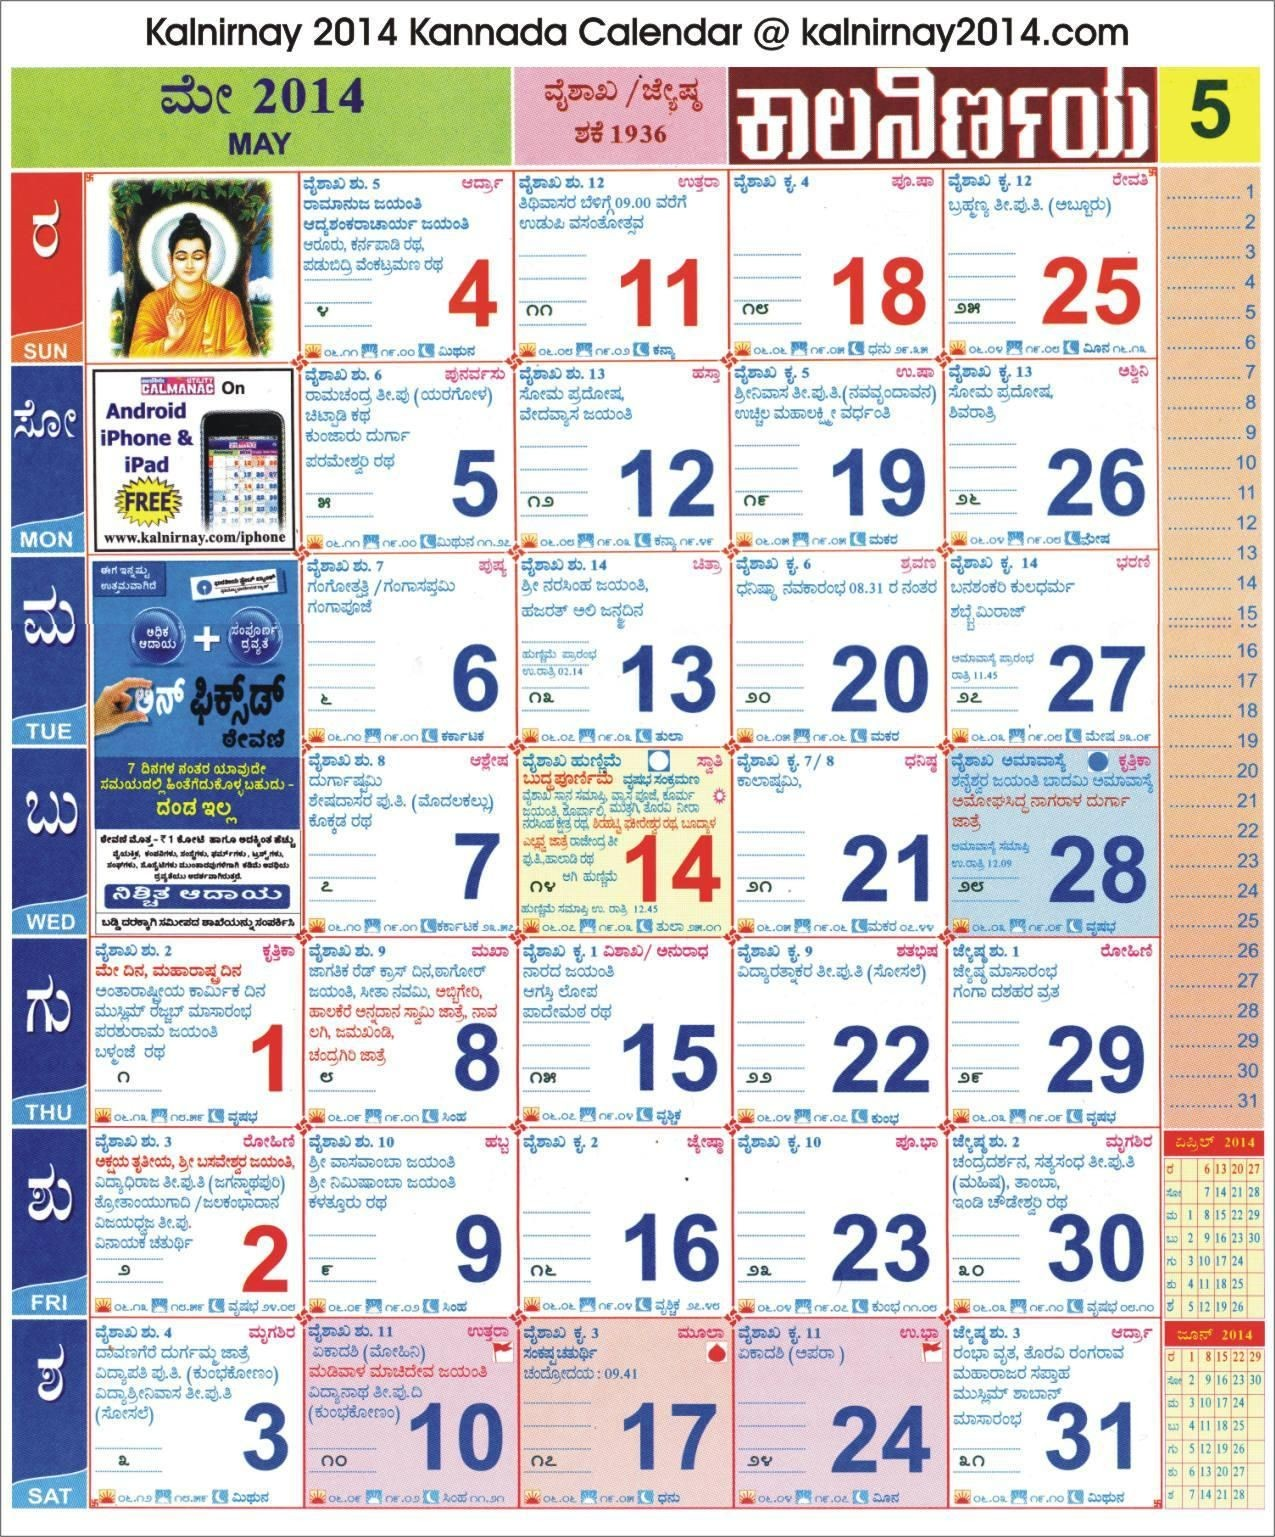 March 2018 Calendar Kalnirnay Más Recientes May 2014 Kannada Kalnirnay Calendar Of March 2018 Calendar Kalnirnay Más Arriba-a-fecha March Calendar 2015 Blank September 2016 Calendar Free to and Print